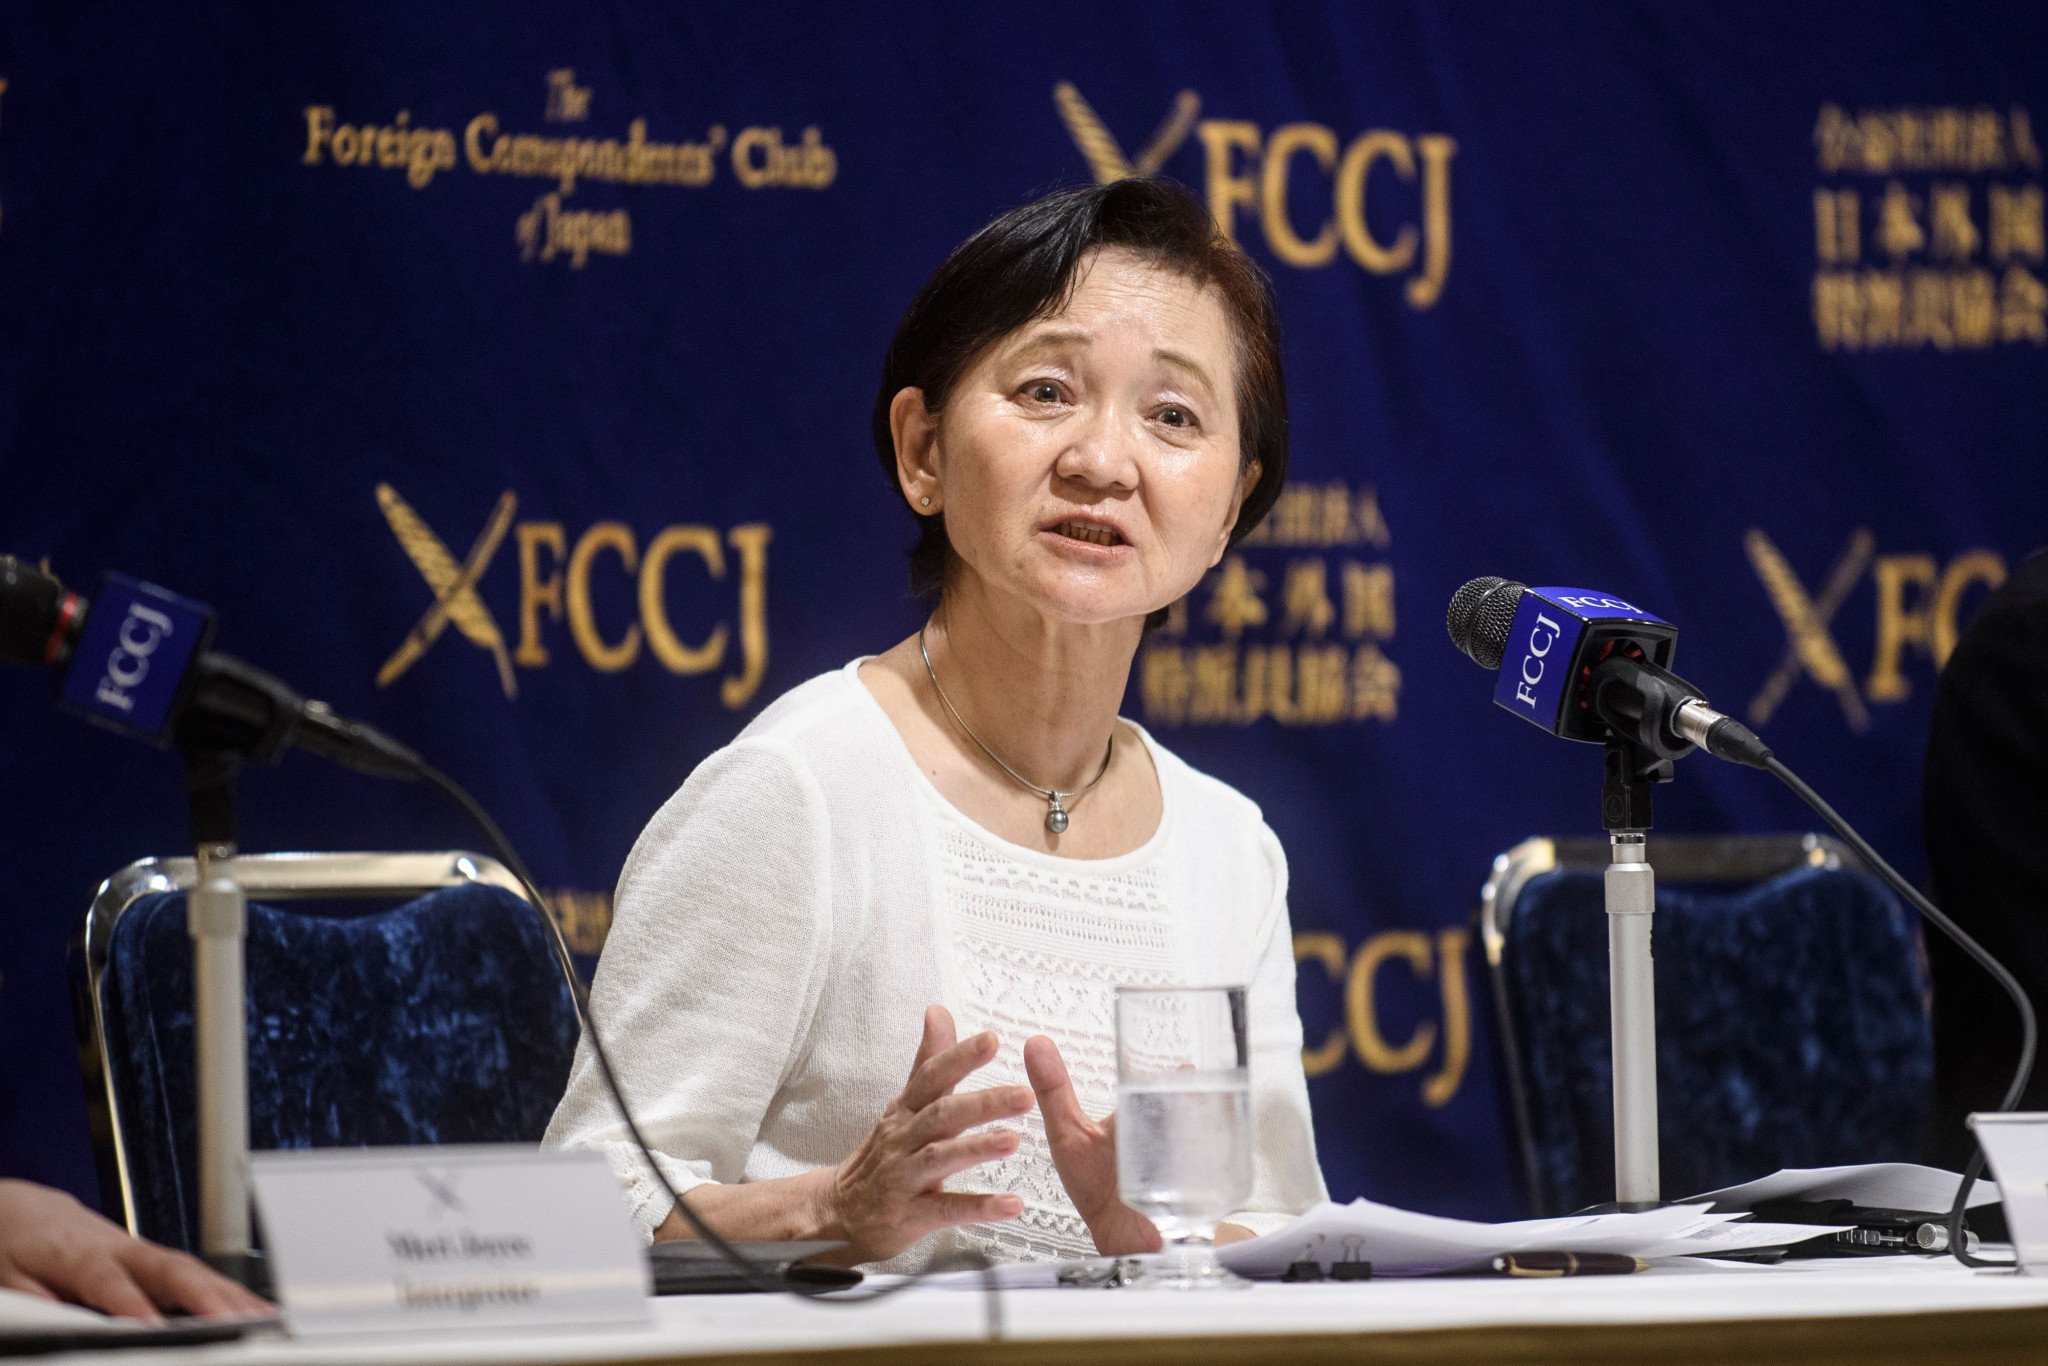 Keiko Kobayashi from the Japan Judo Accident Victims Association is pleading for change in attitudes towards corporal punishment ©Getty Images